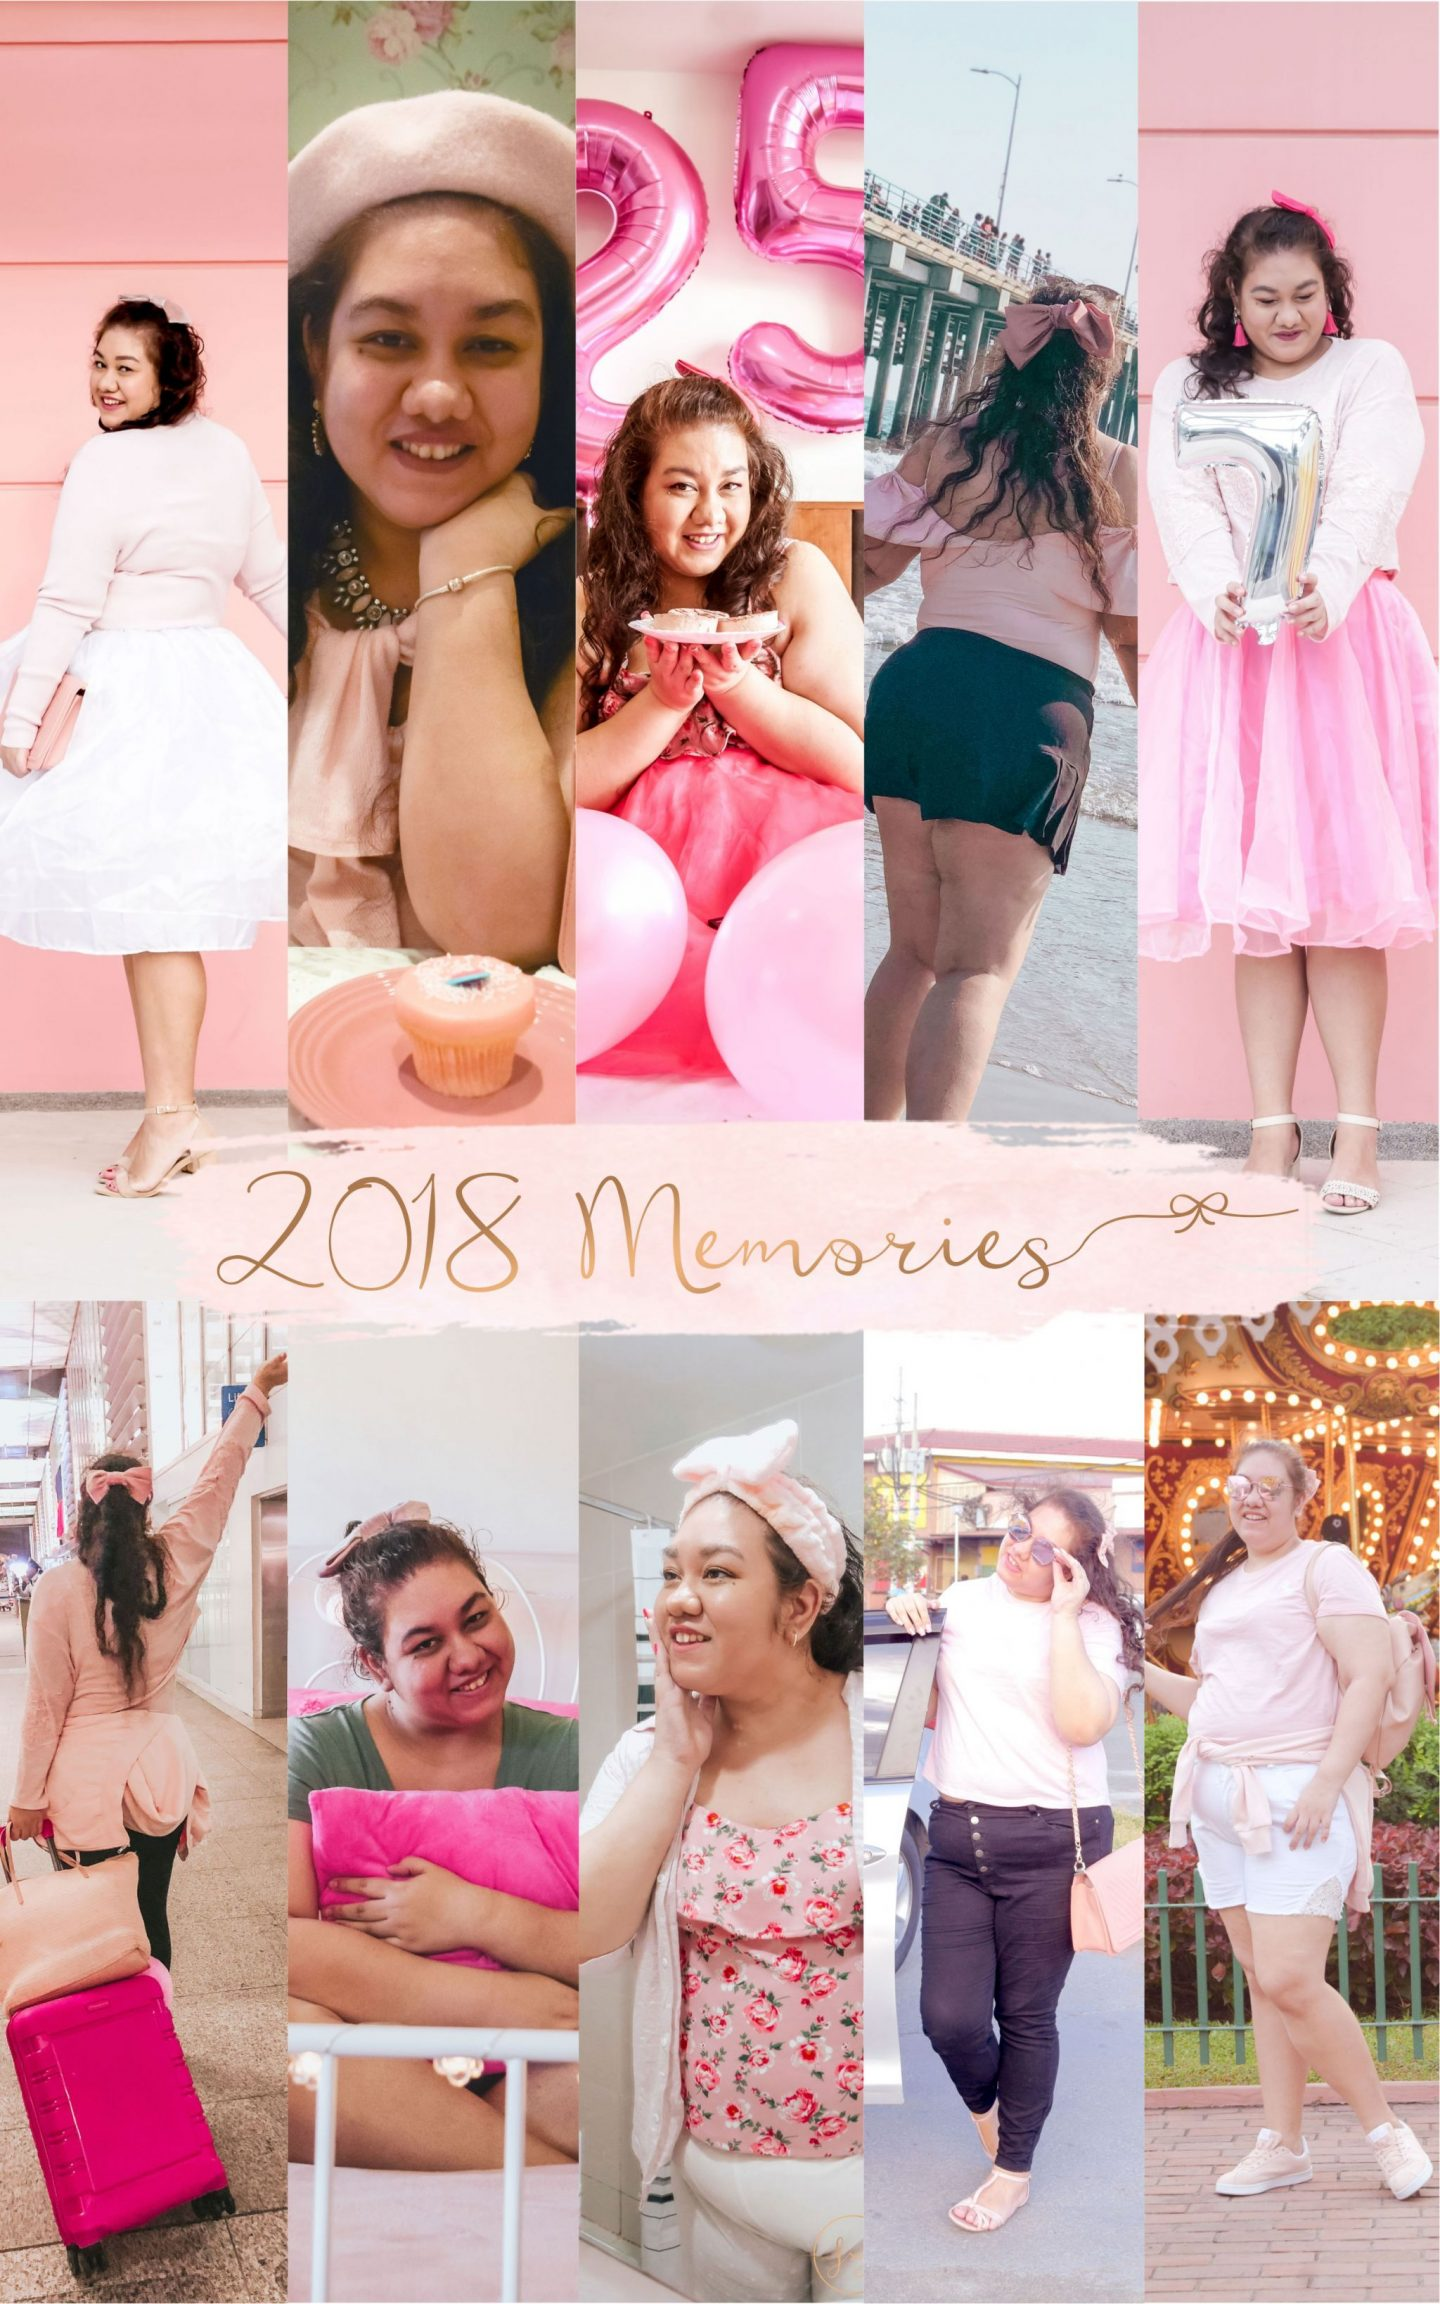 My Favorite and Top Moments of 2018